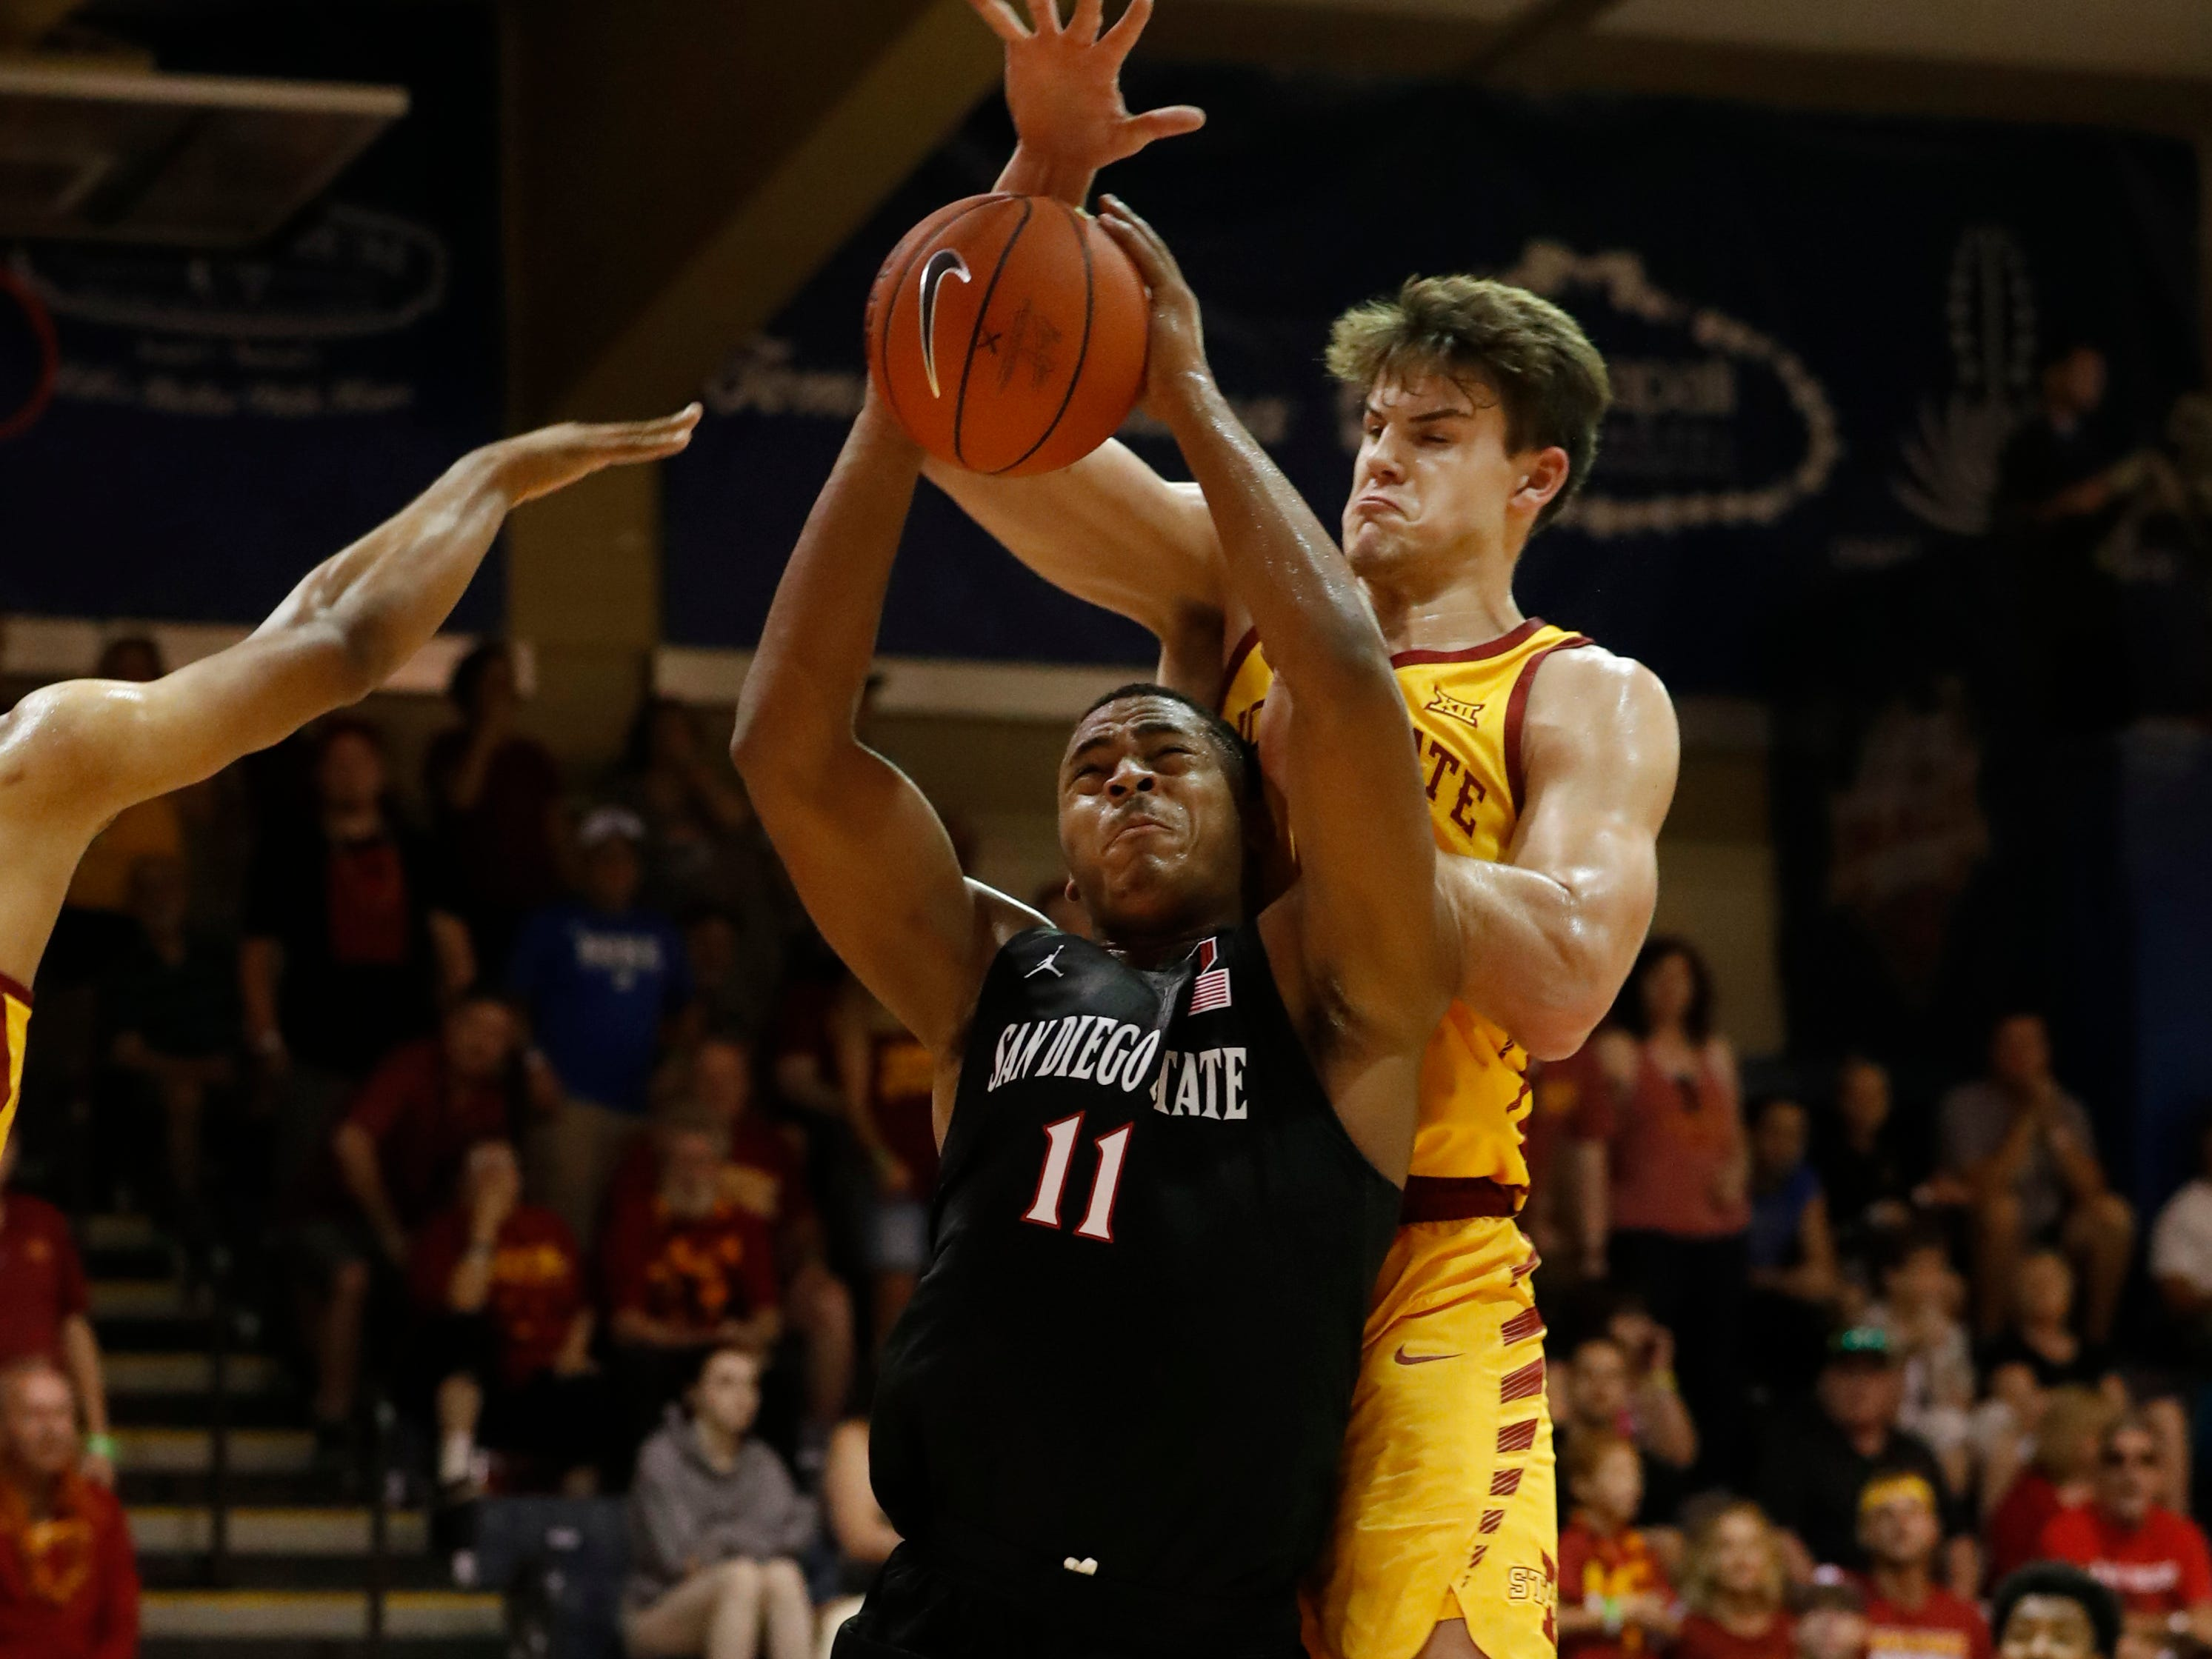 Iowa State forward Michael Jacobson (12) fouls San Diego State forward Matt Mitchell (11) during the first half of a NCAA college basketball game at the Maui Invitational, Wednesday, Nov. 21, 2018, in Lahaina, Hawaii. (AP Photo/Marco Garcia)